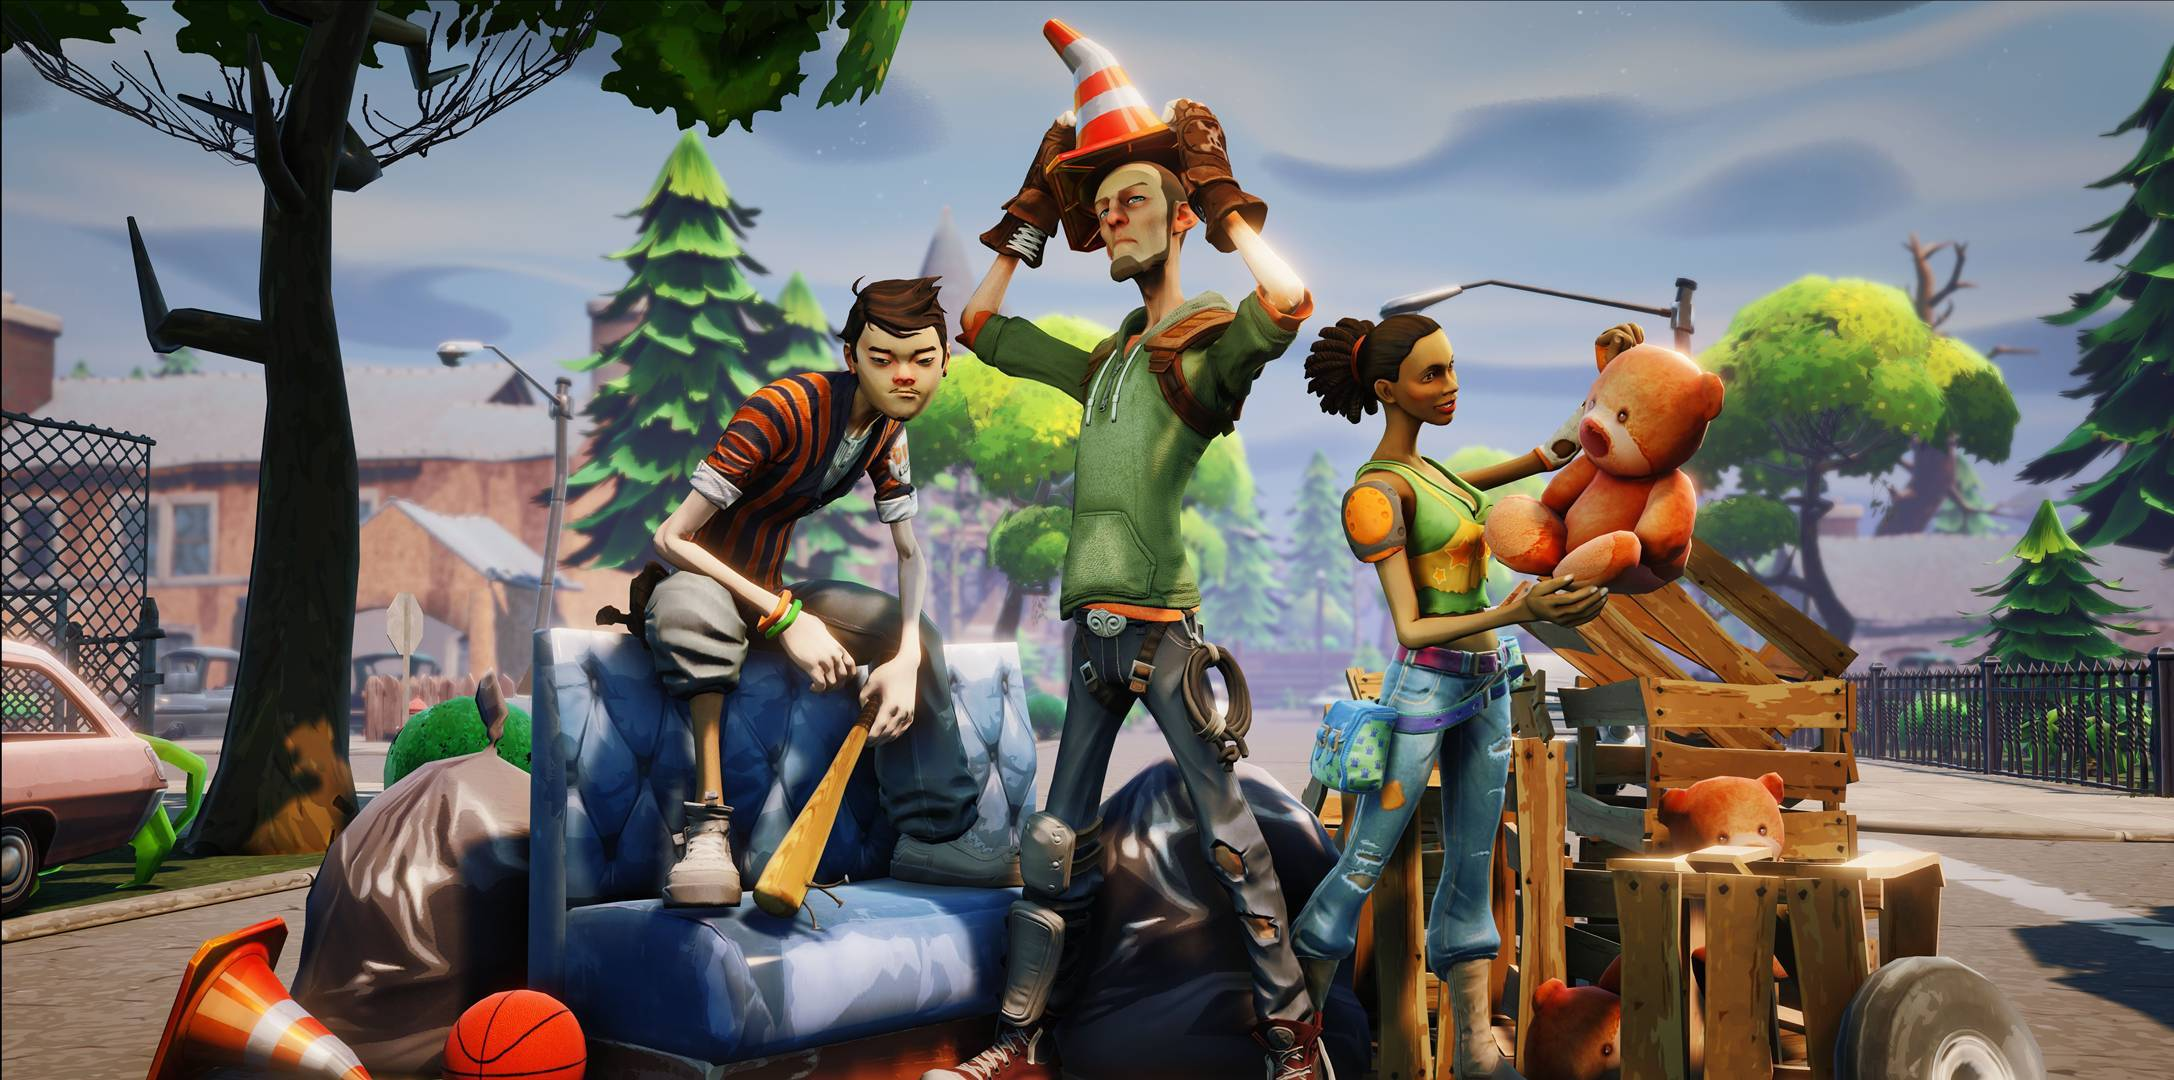 Fortnite Wallpapers in 1080P HD « GamingBolt: Video Game News